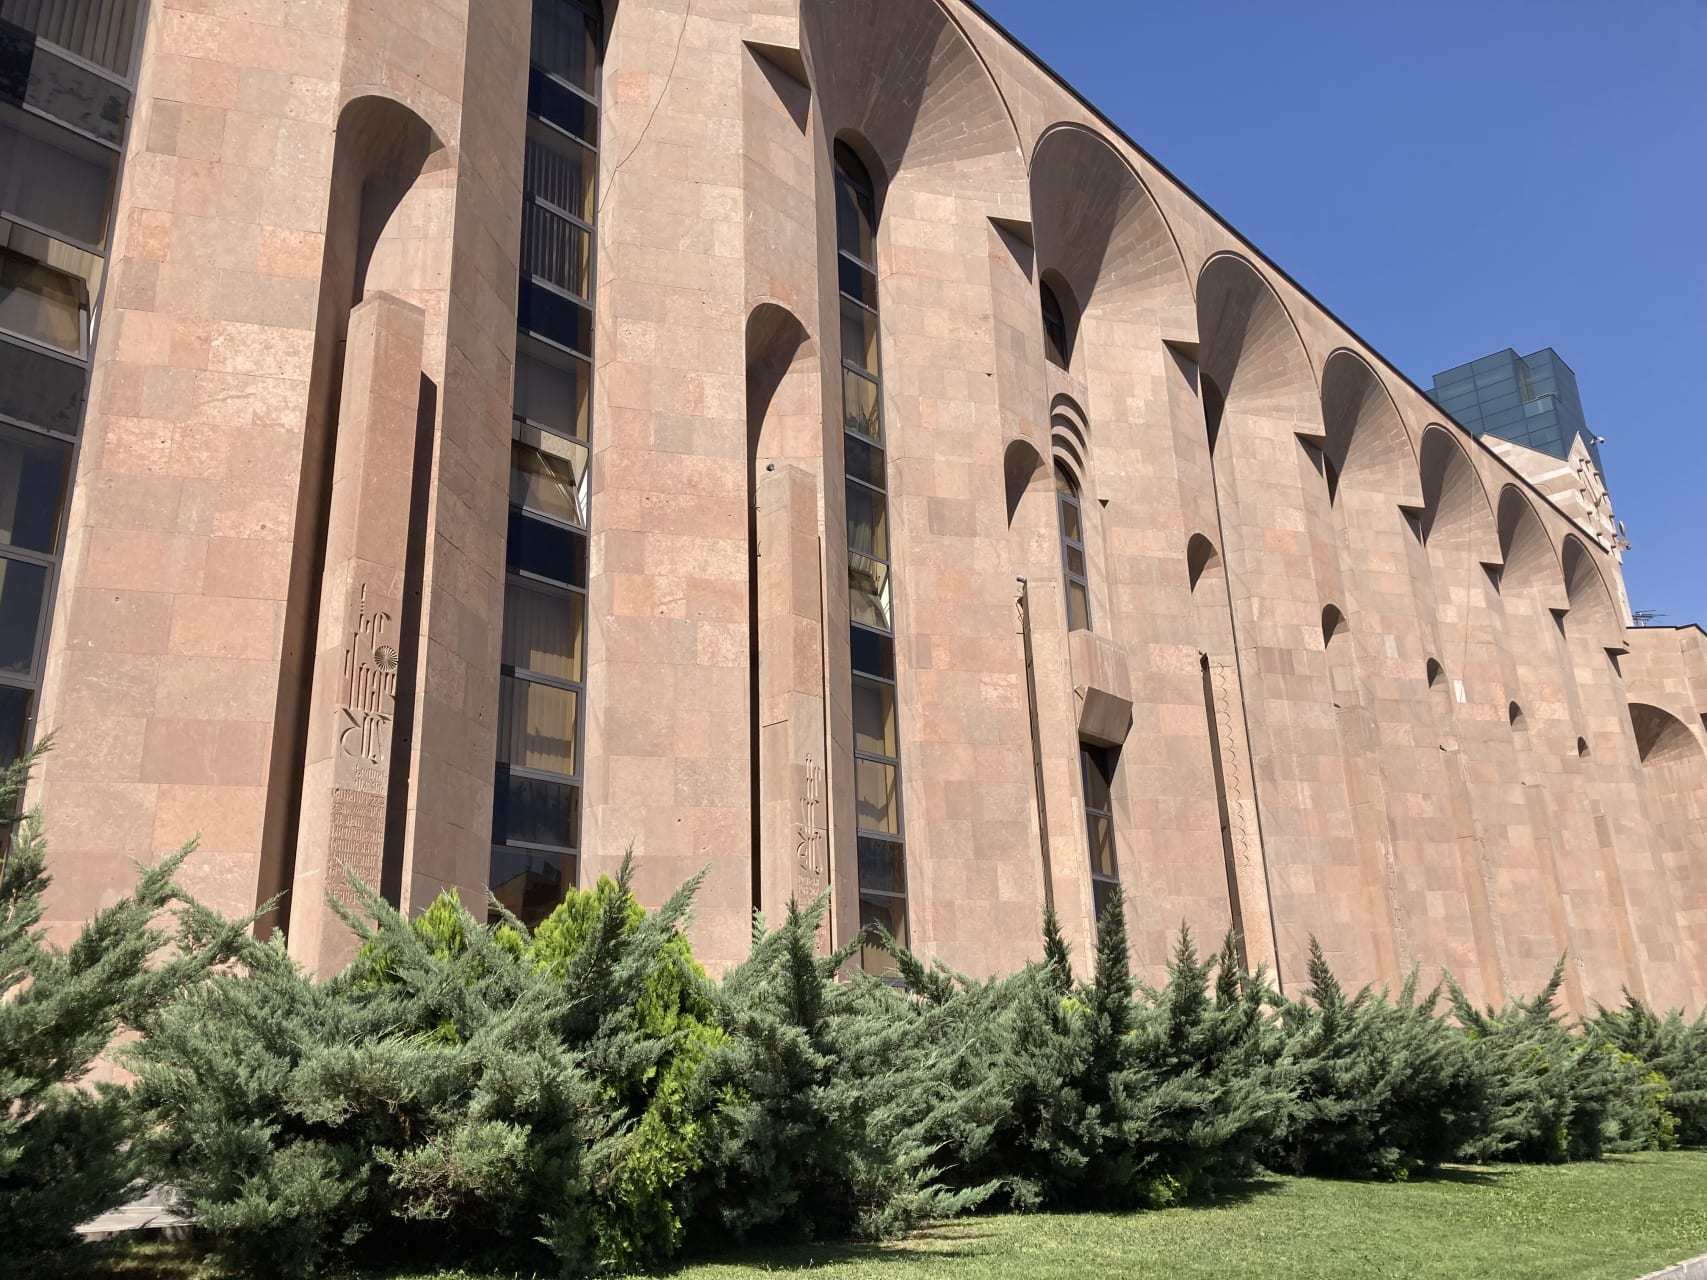 Yerevan - Yerevan History Museum: Discover the Rich History of a City Older Than Rome